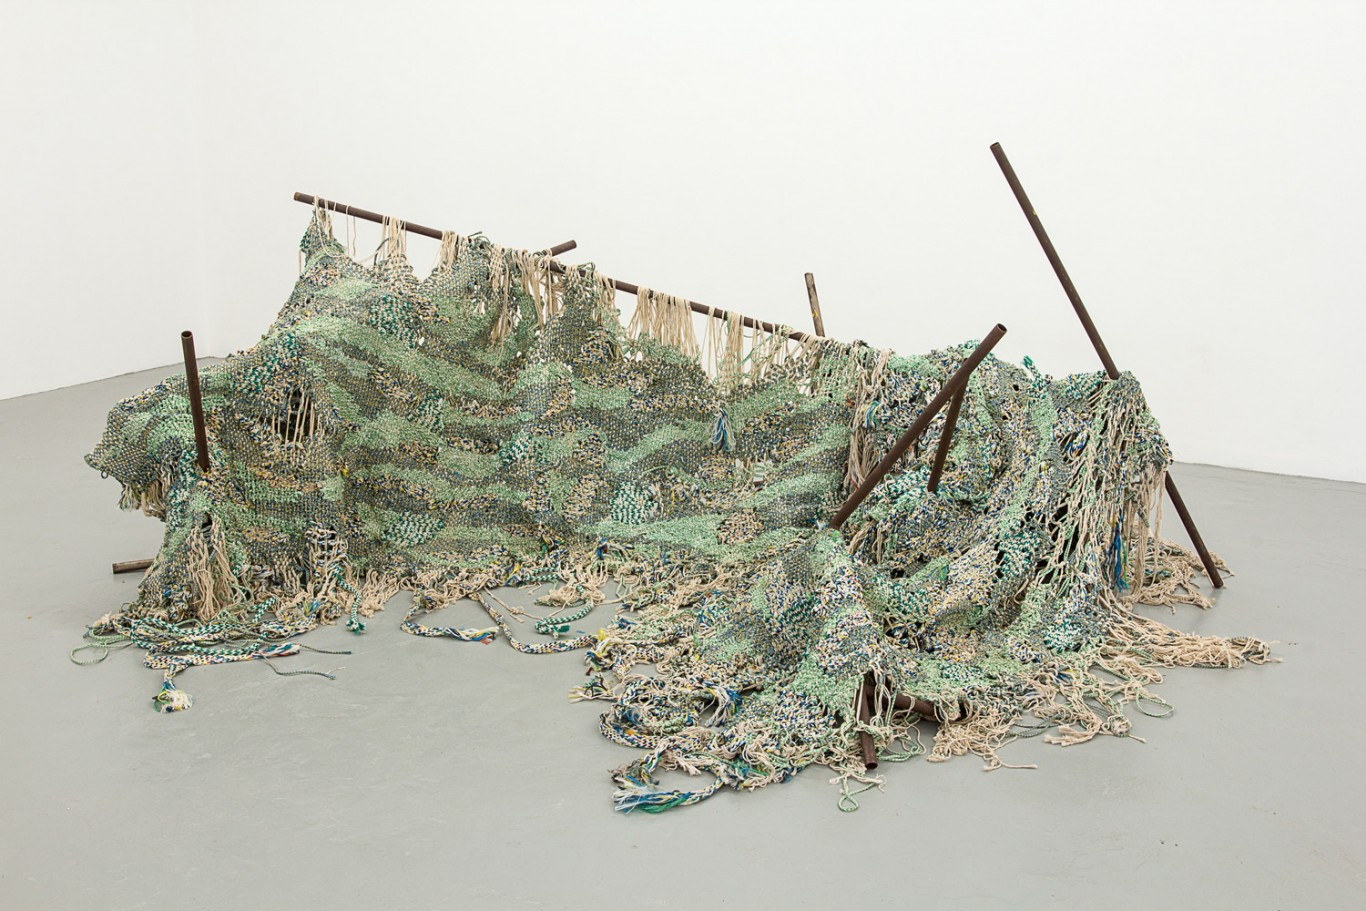 Igshaan Adams (in collaboration with Kyle Morland) Stoflike oorskot, 2016. Woven nylon rope, string and mild steel; approx. 300 x 120 x 240 cm